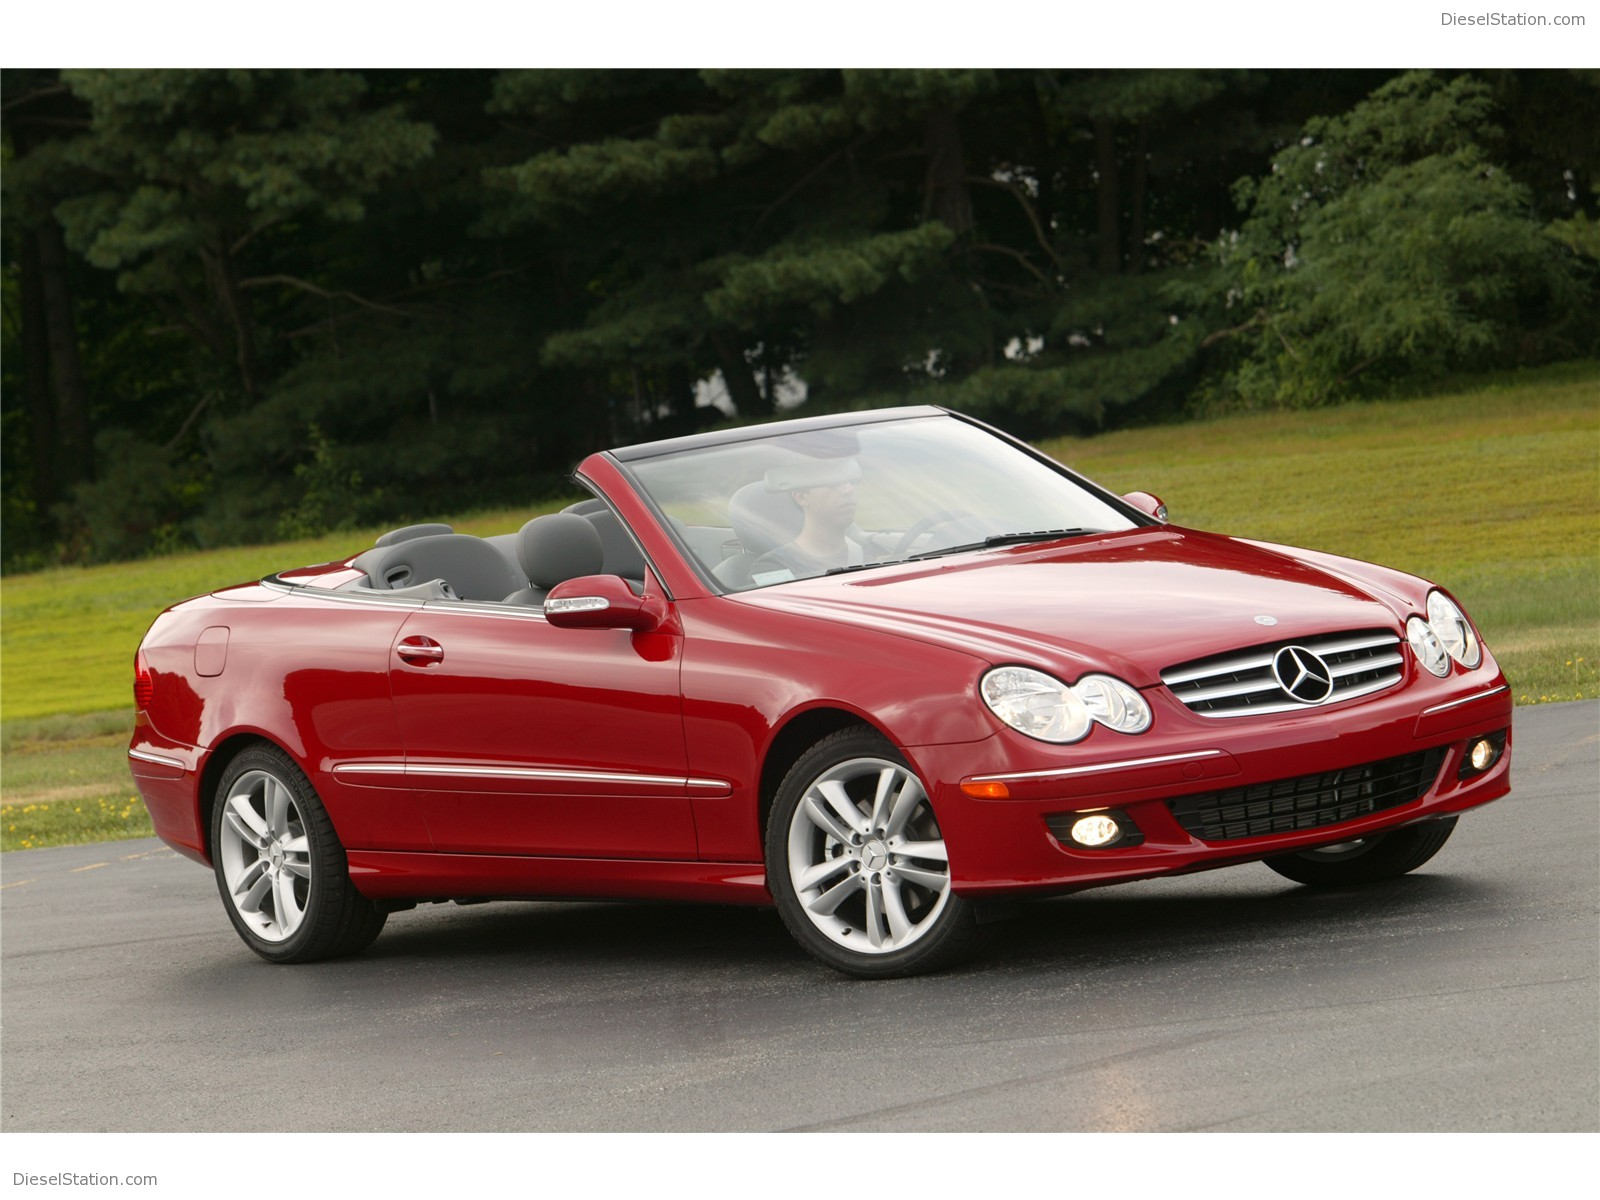 mercedes benz clk 350 technical details history photos